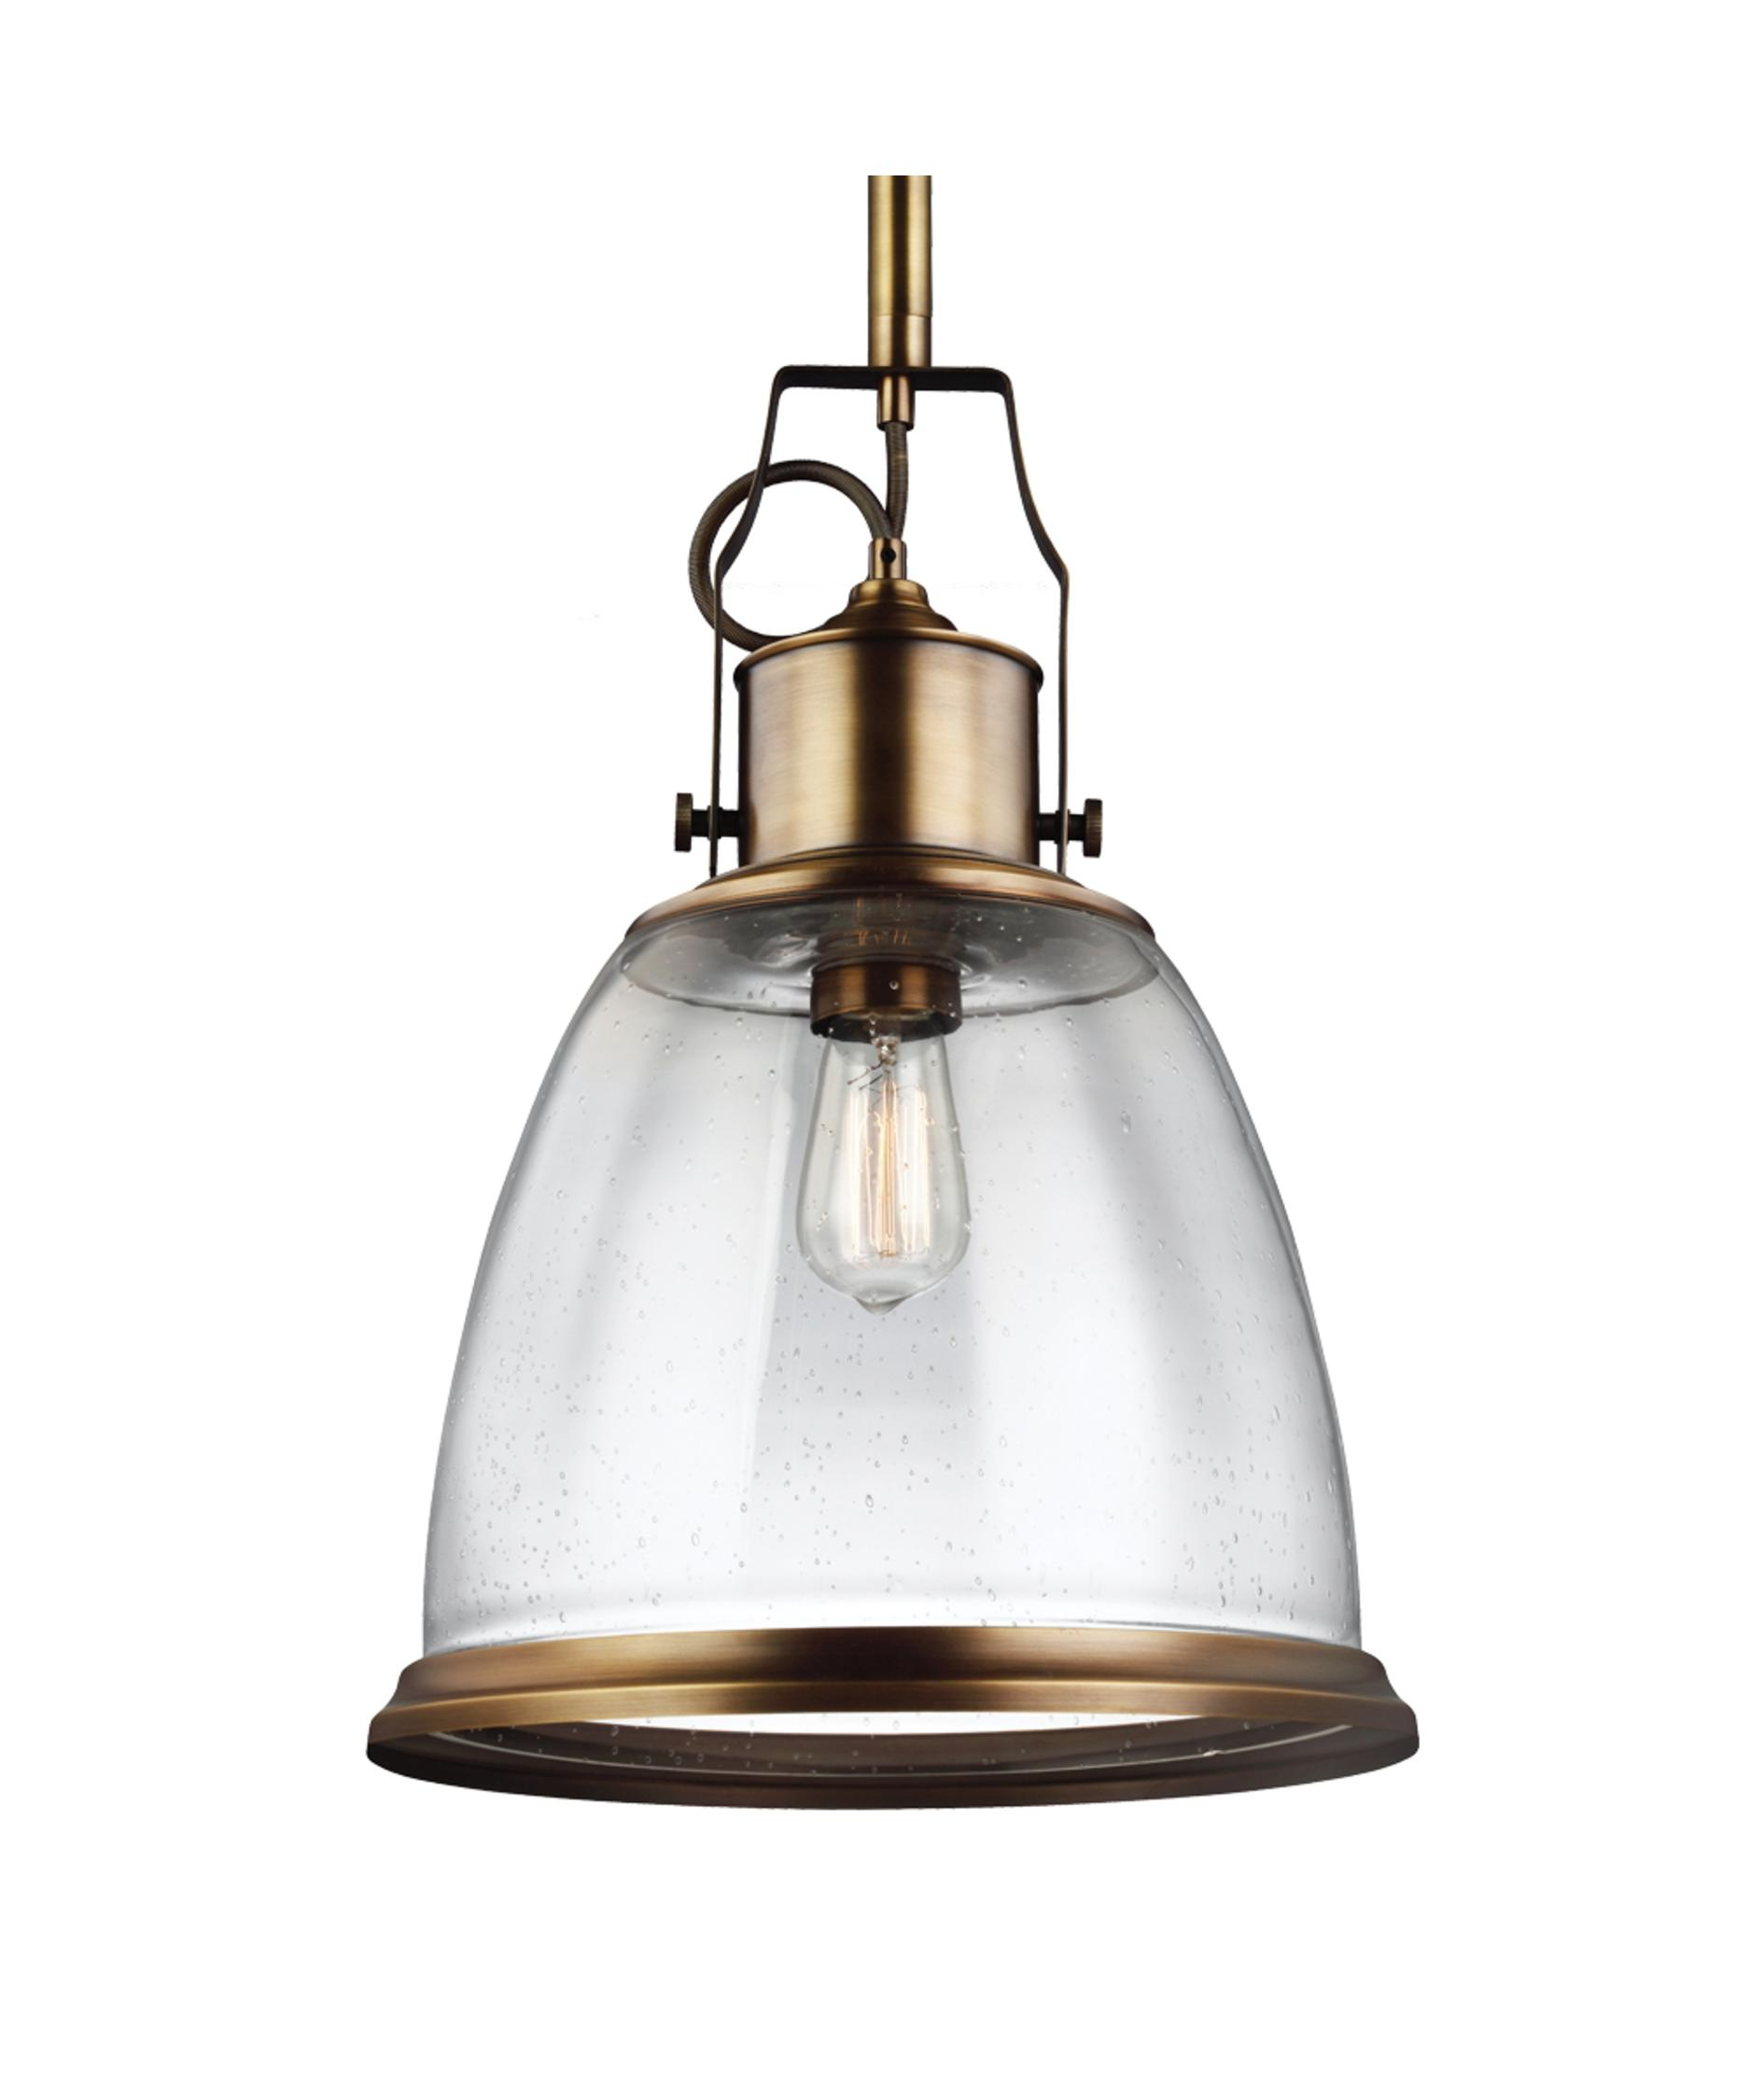 Murray Feiss Hobson 14 Inch Wide 1 Light Mini Pendant | Capitol ...